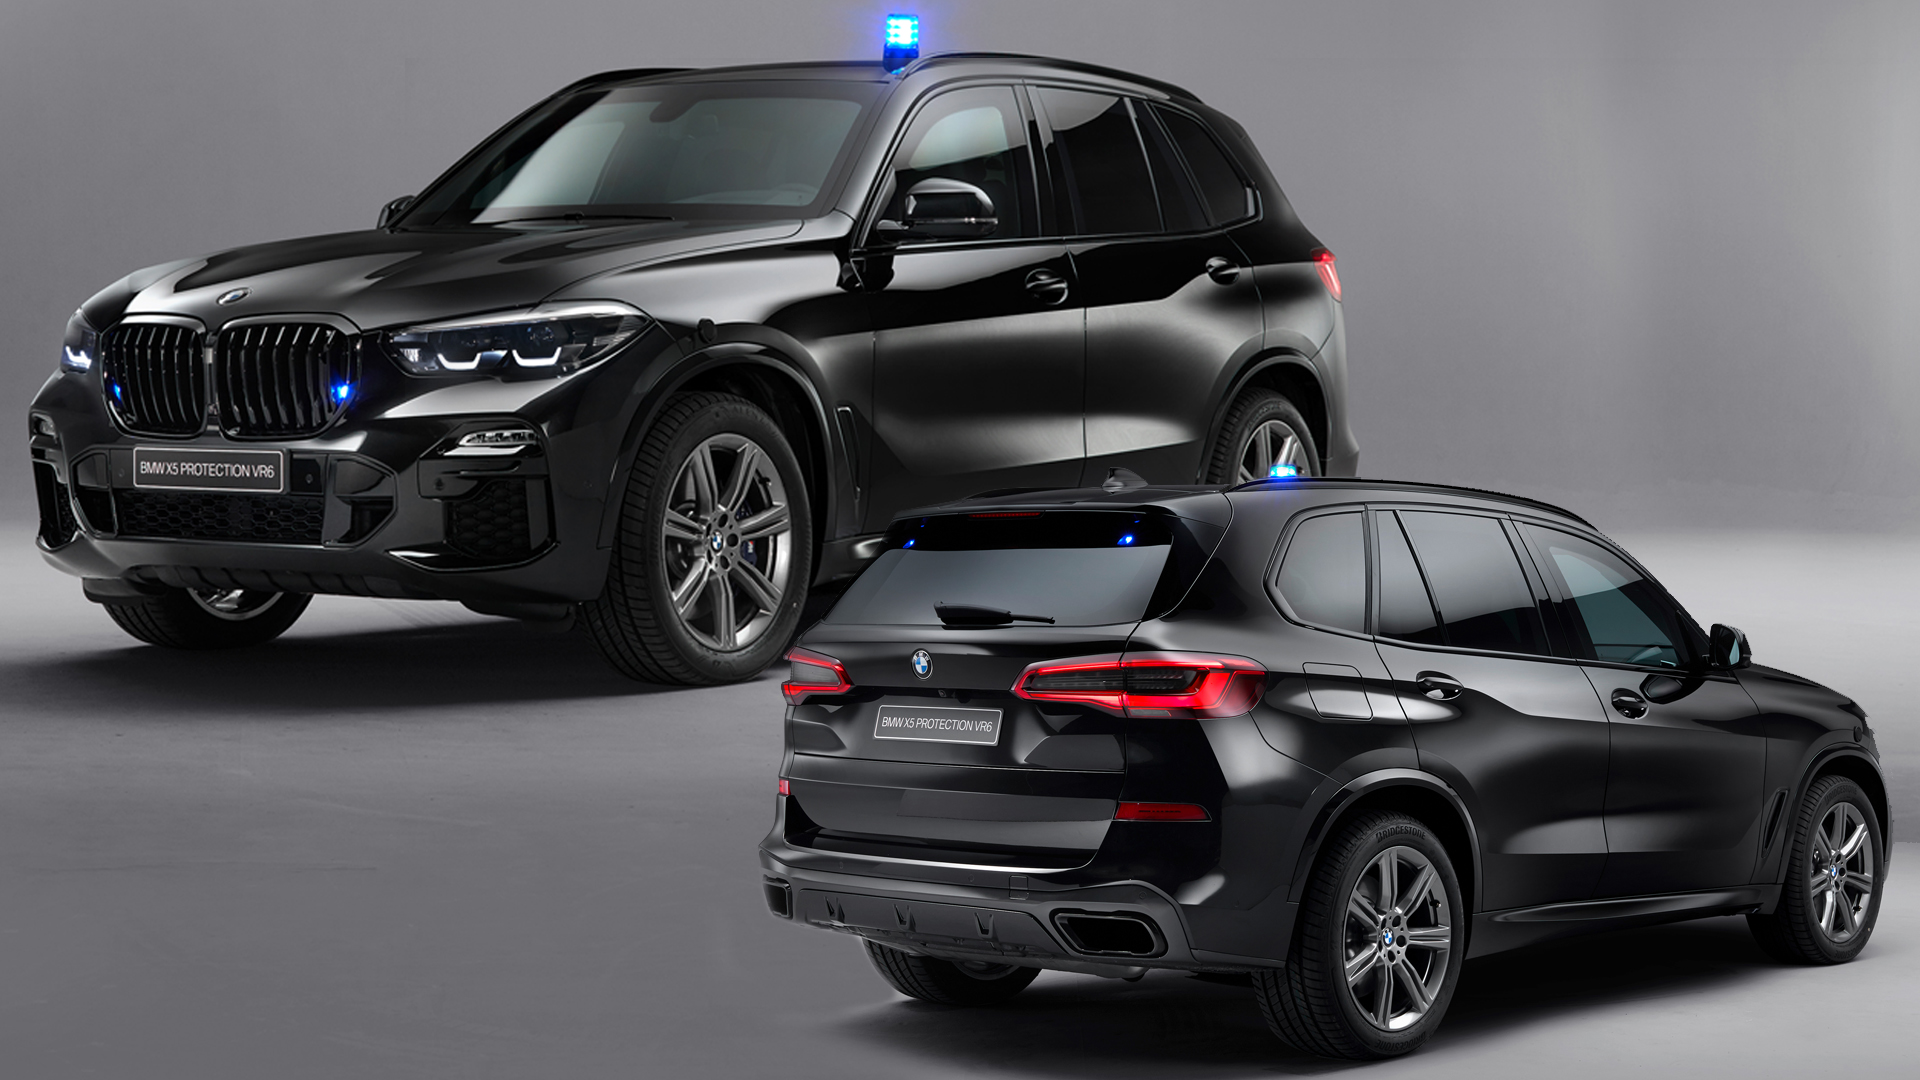 BMW X5 VR6 Protection